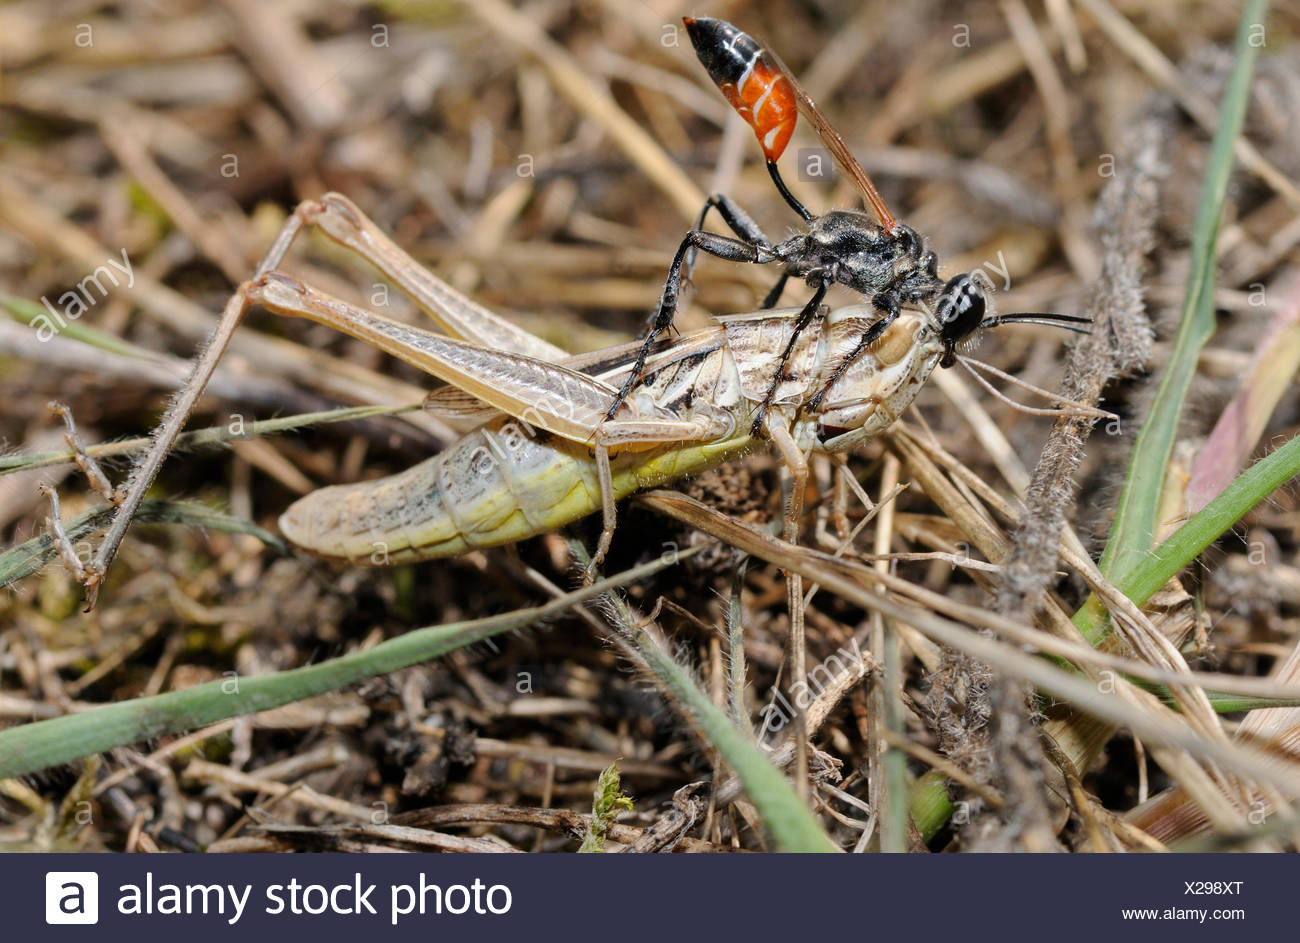 Prionyx capturing a grasshopper and pulling her gallery - Stock Image